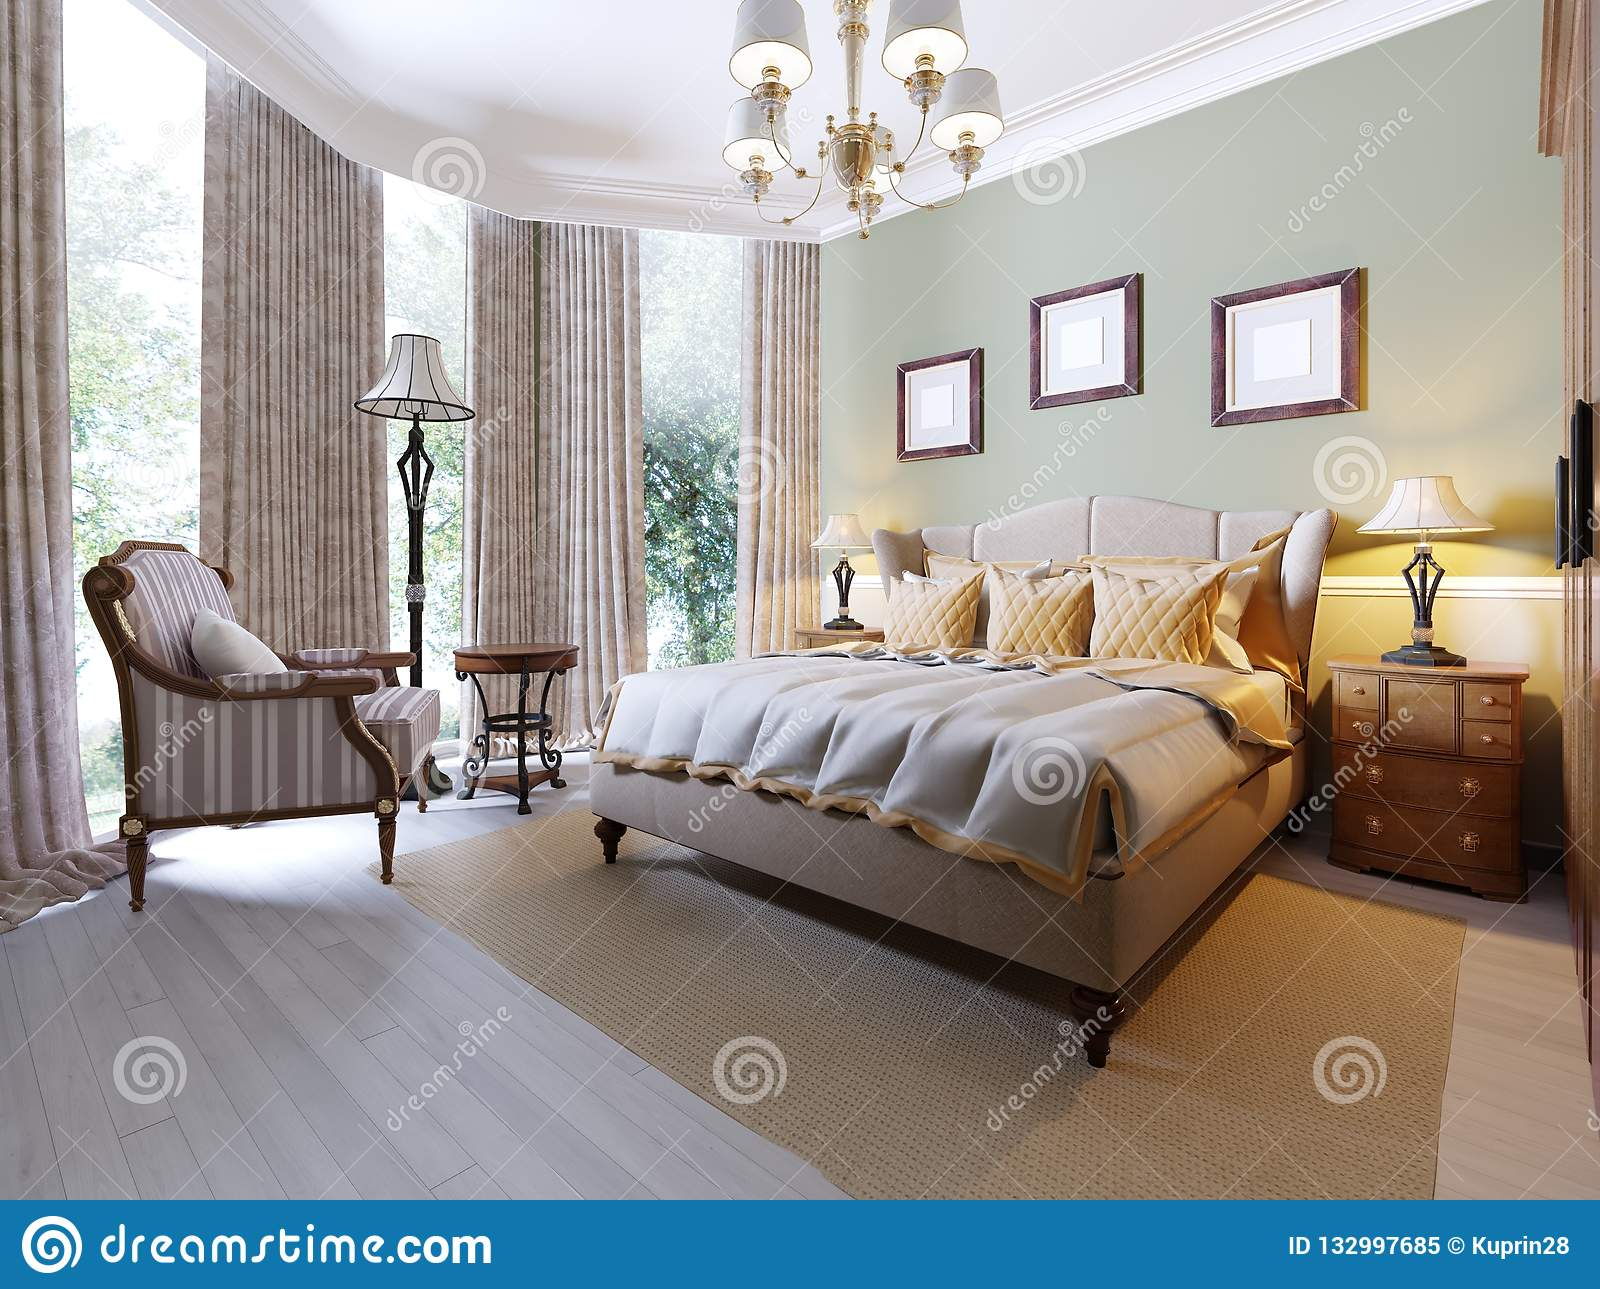 English Style Bedroom With A Large Soft Fabric Bed Bedside Tables With Lamps Large Wardrobe And Dresser With Mirror Stock Illustration Illustration Of Cushion Cozy 132997685